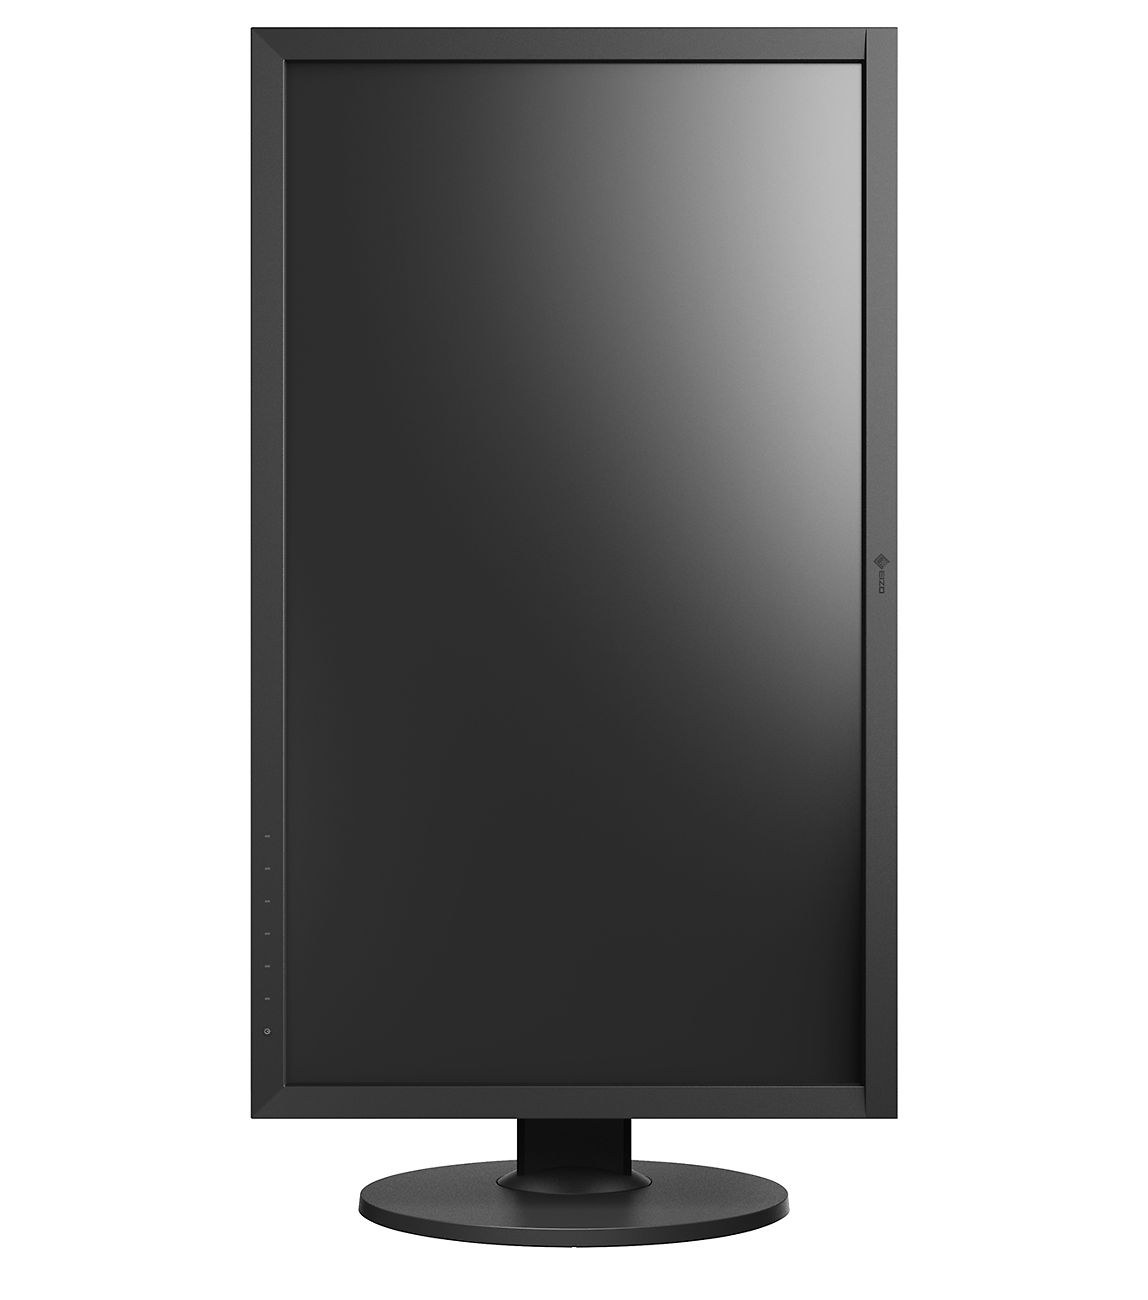 "Eizo ColorEdge CS2740 27"" 4K Monitor Image"